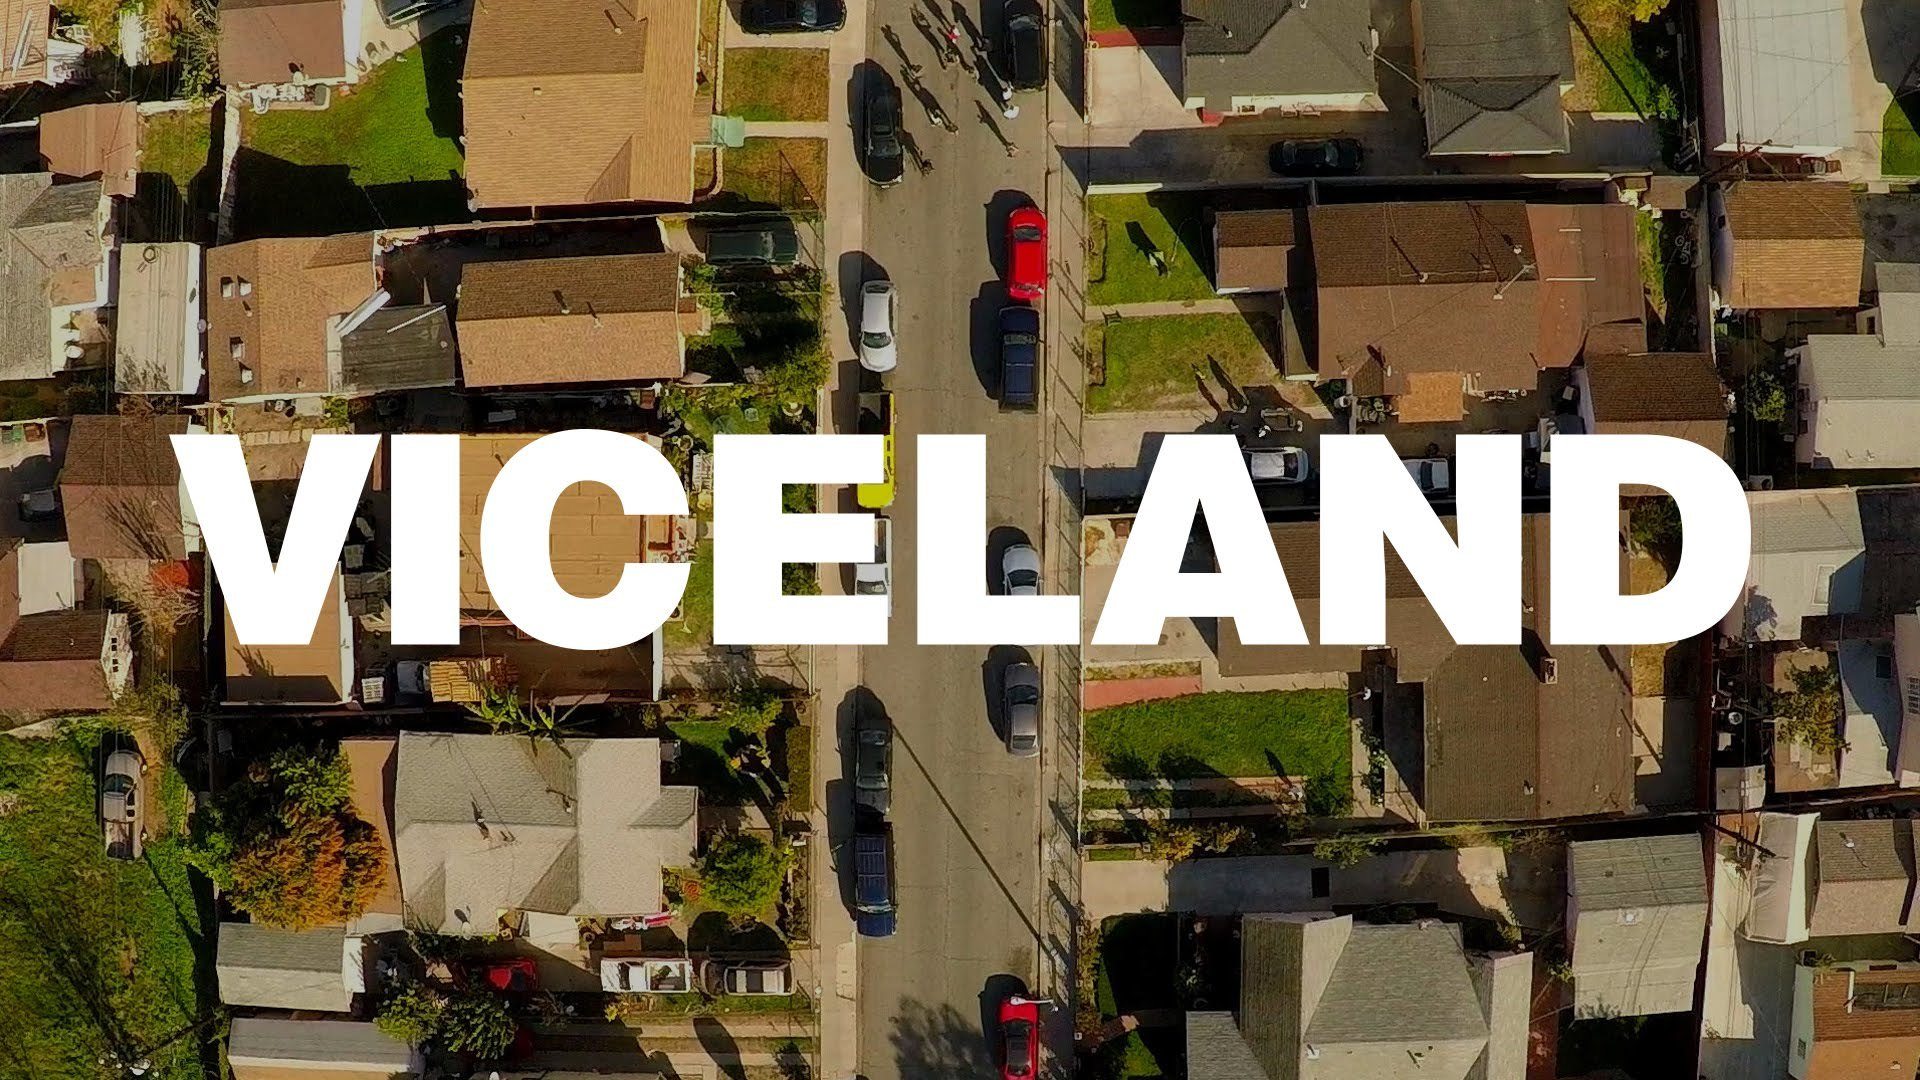 how-to-watch-viceland-1453997961.jpg